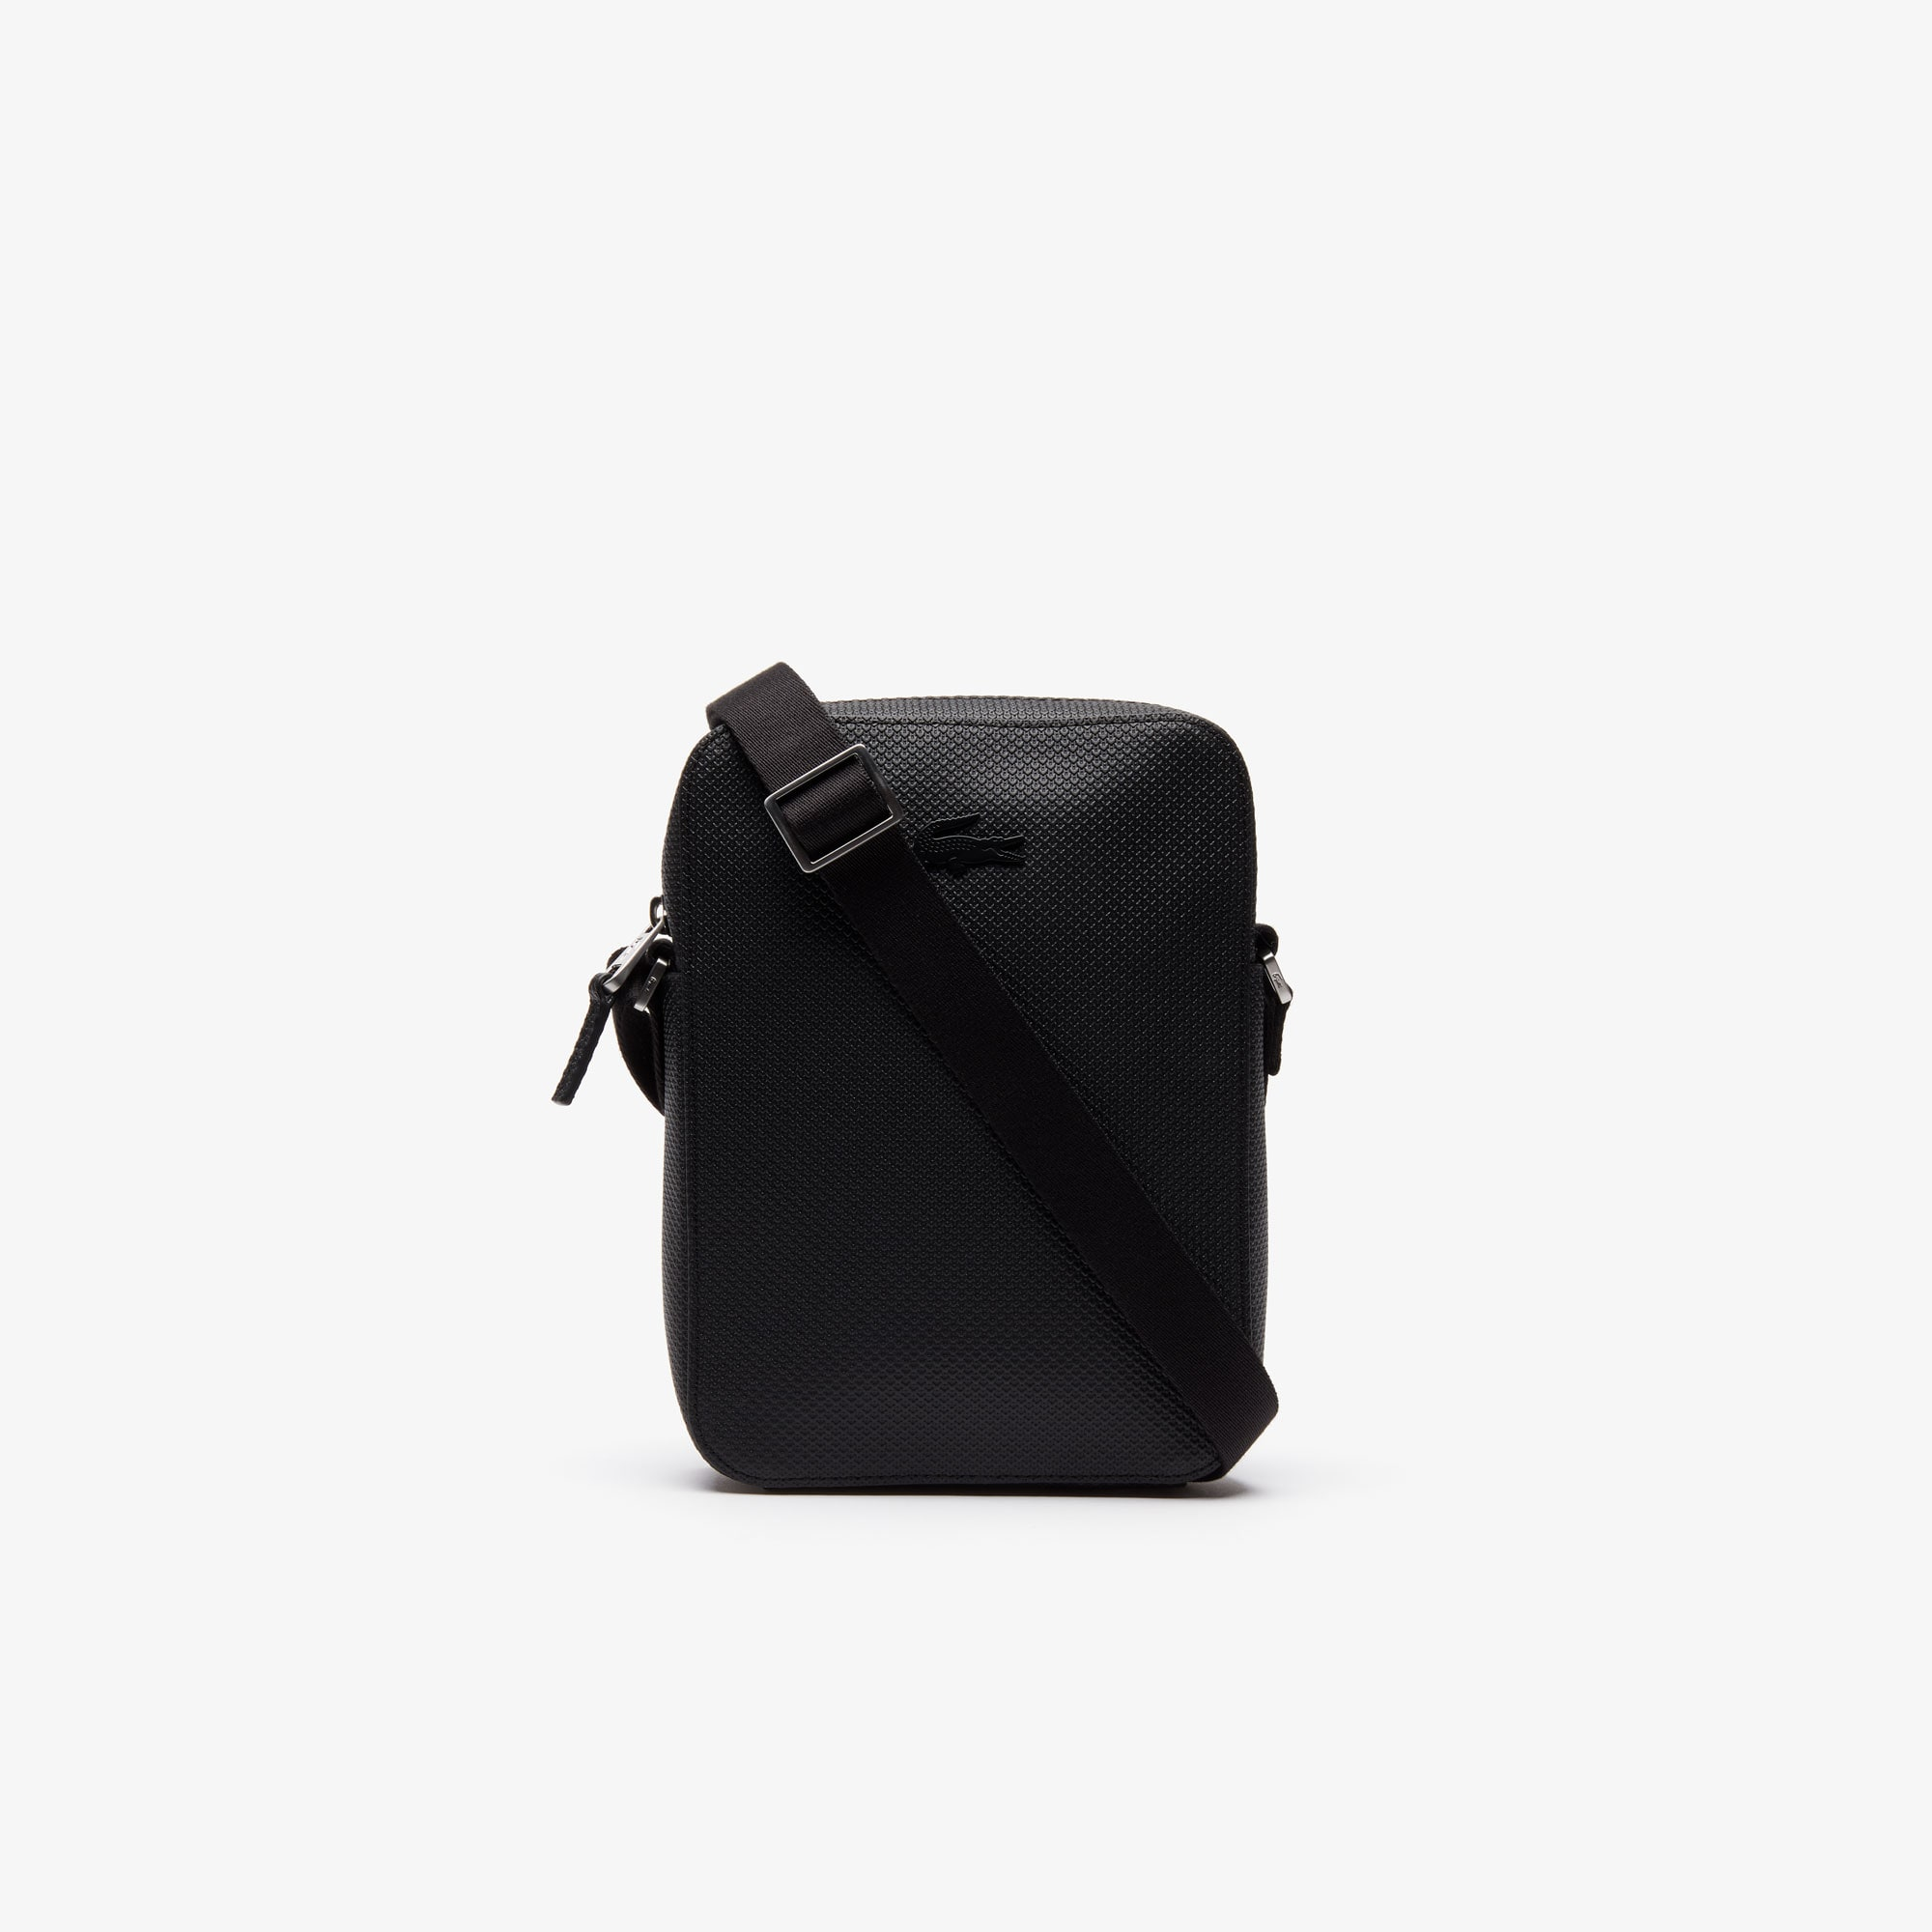 11c88846464 Backpacks & Bags for men | Leather goods | LACOSTE